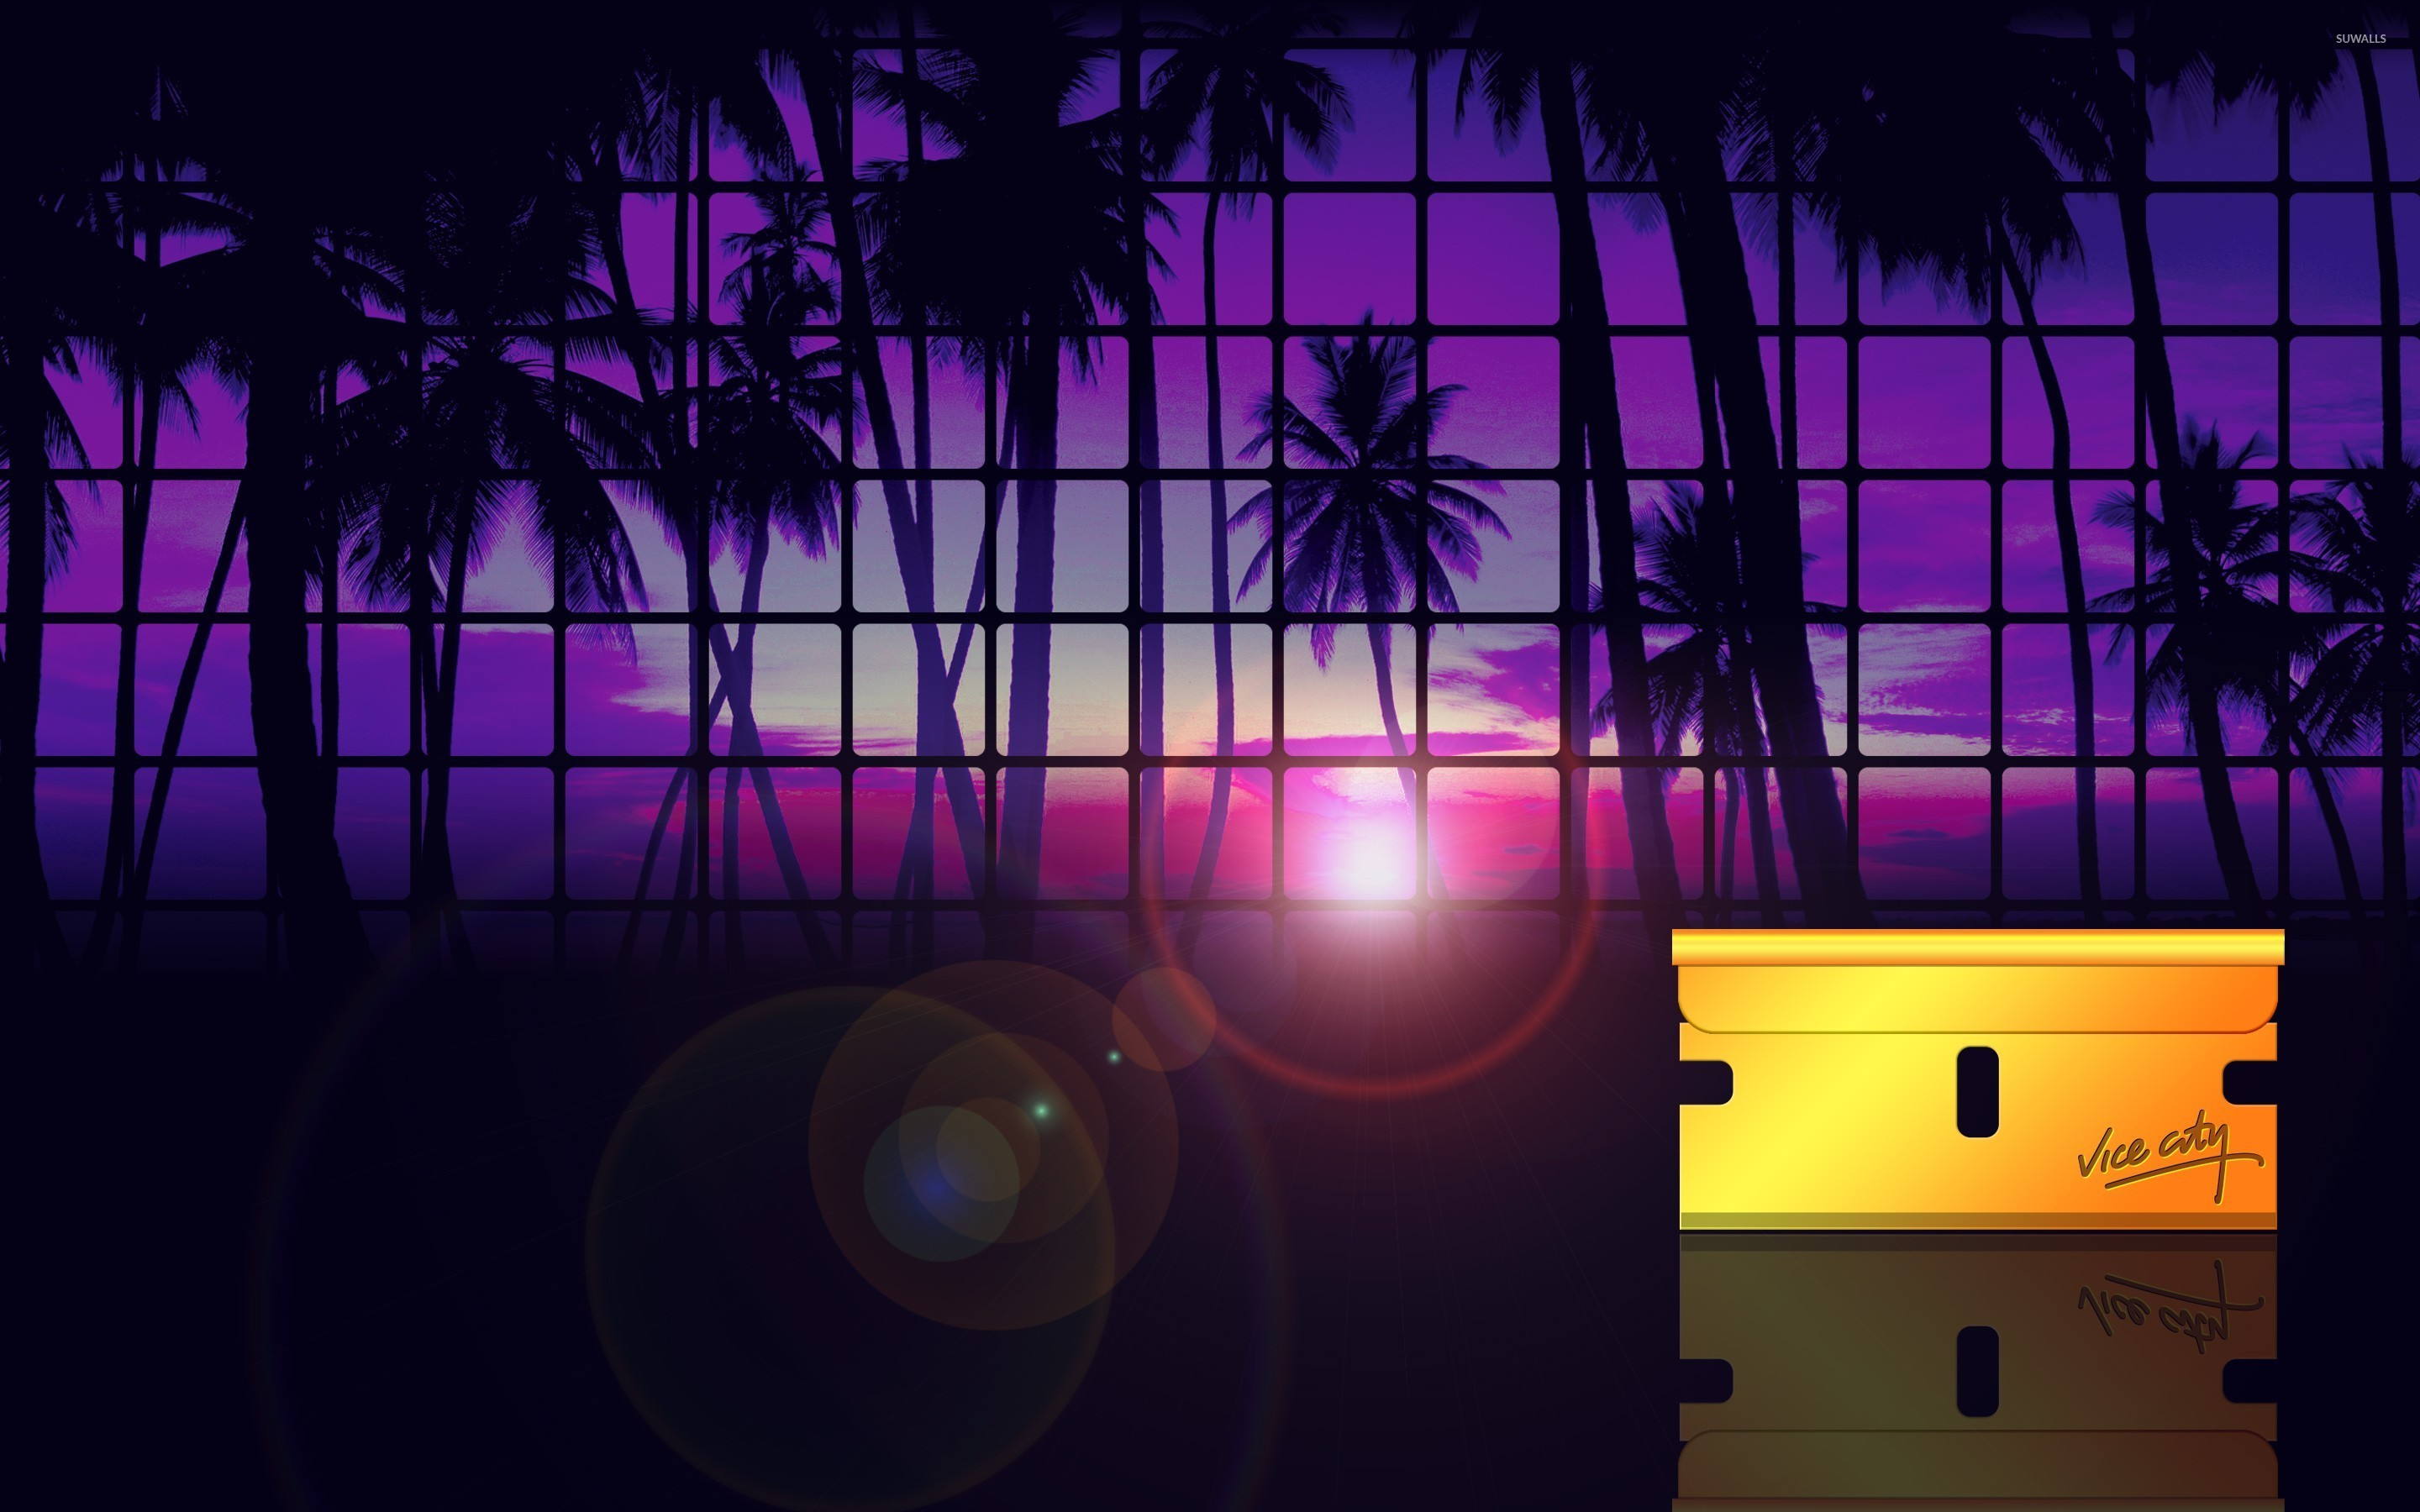 Grand Theft Auto Vice City Sunset Wallpaper Game Wallpapers